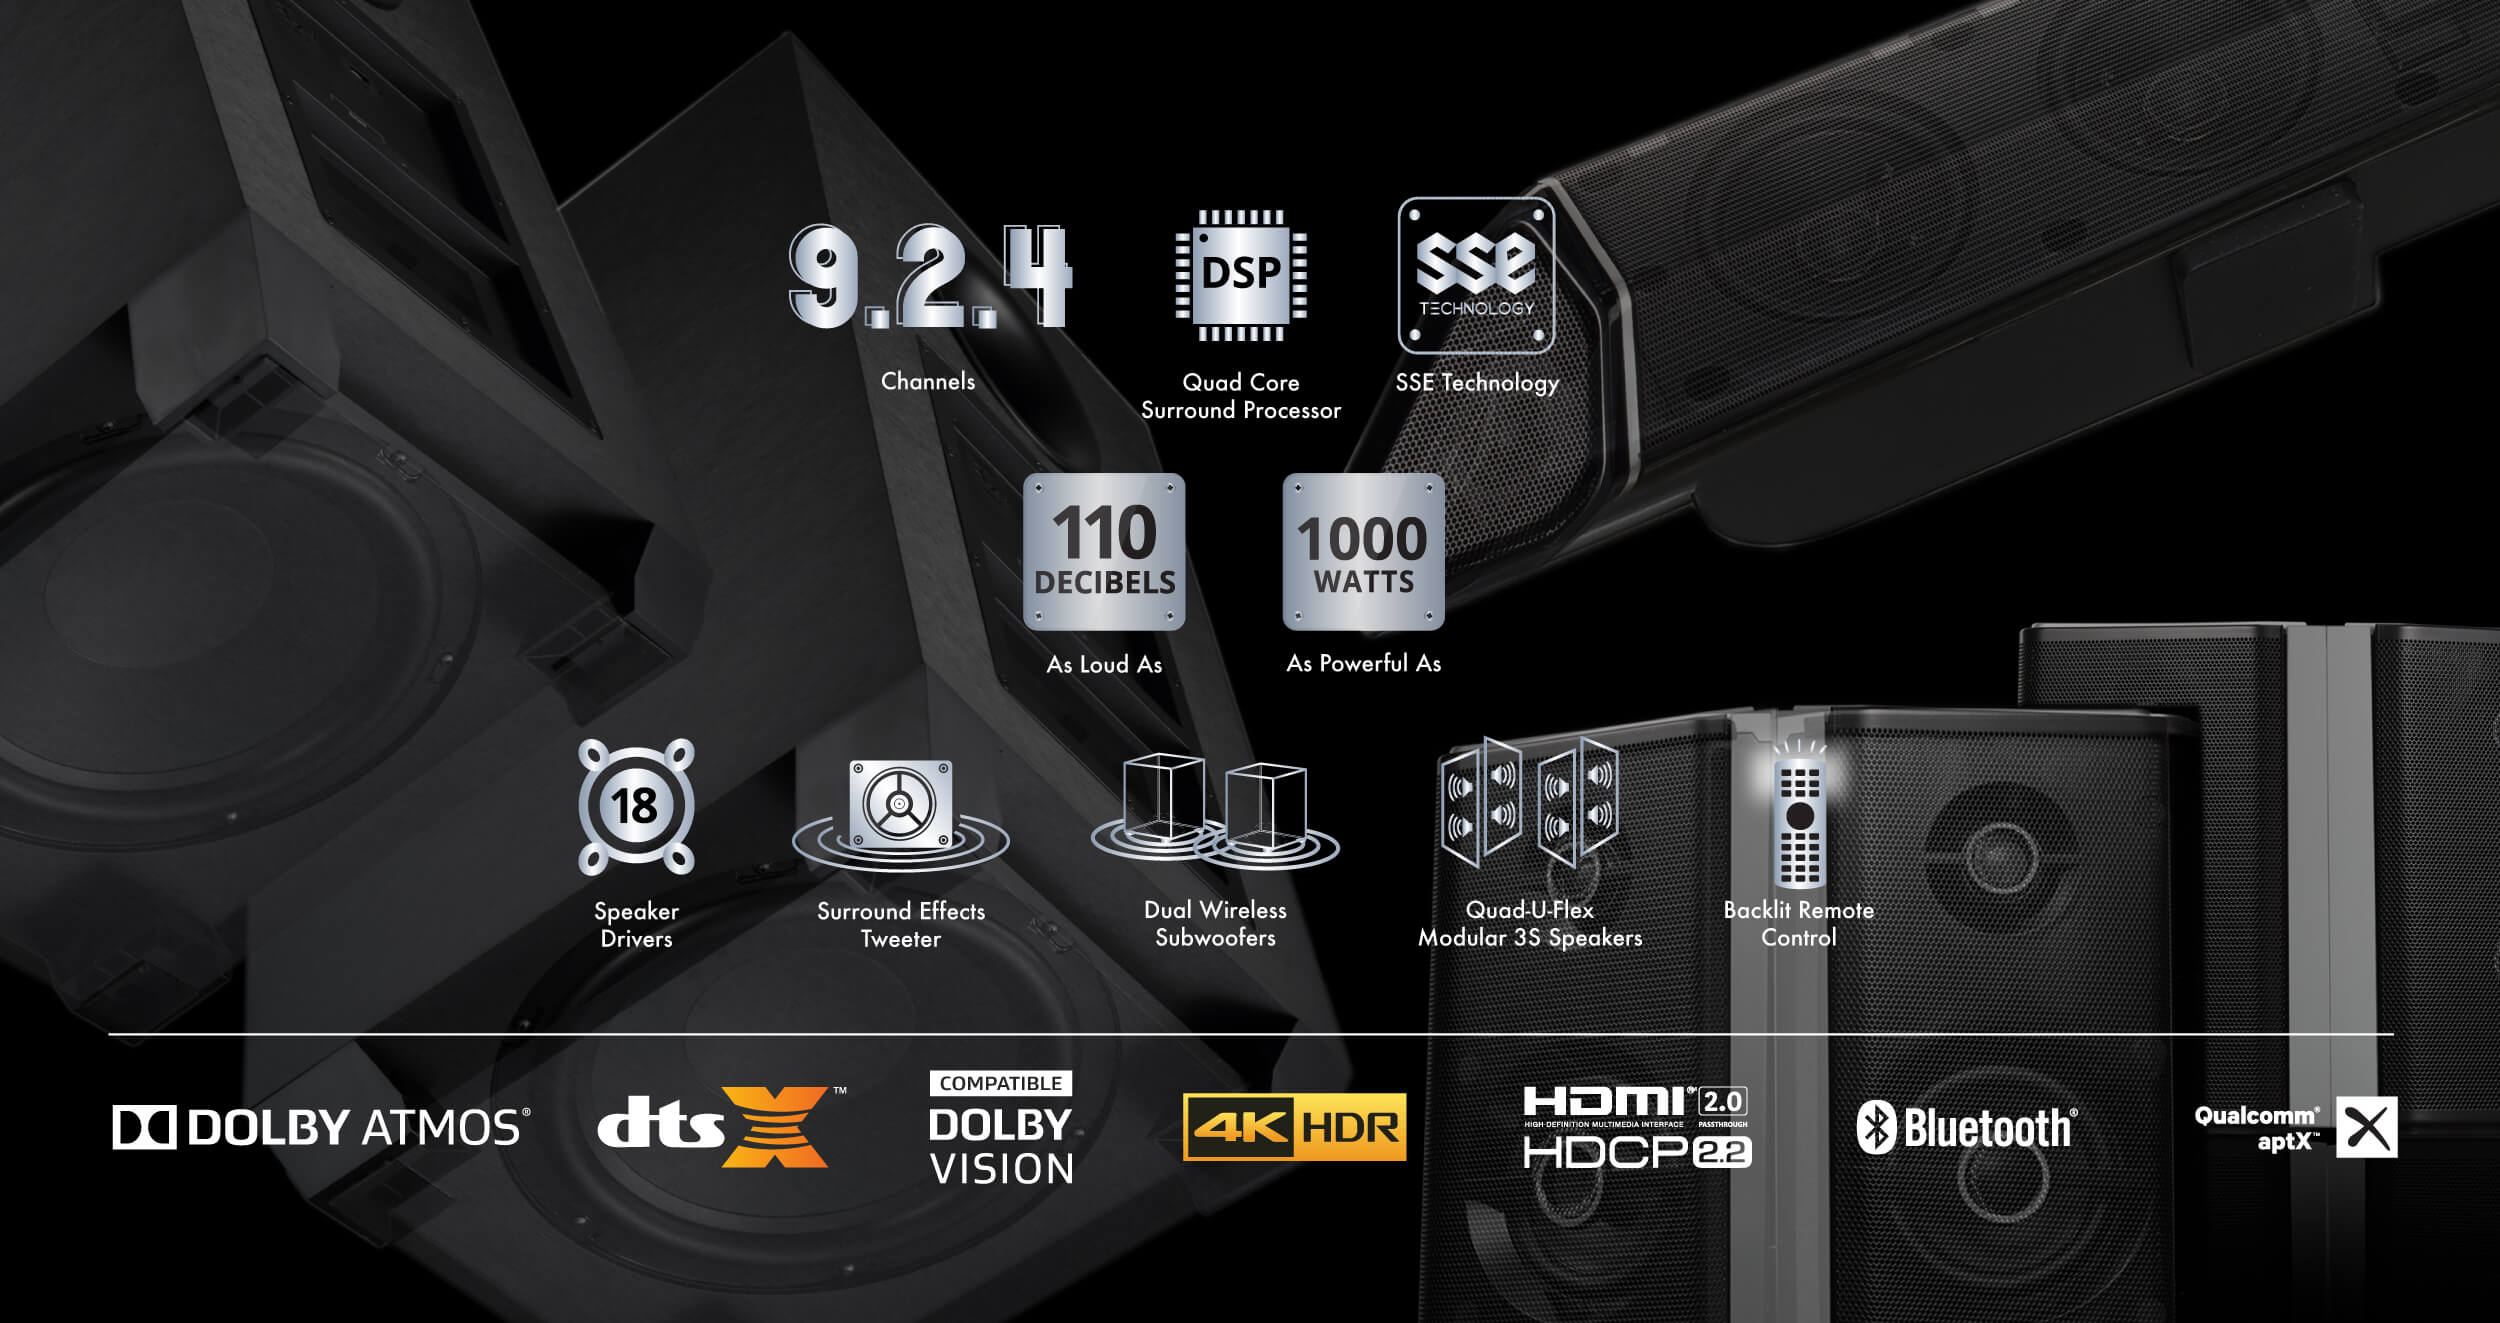 ultra-92-sse-dolby-atmos-feature-banner.jpg